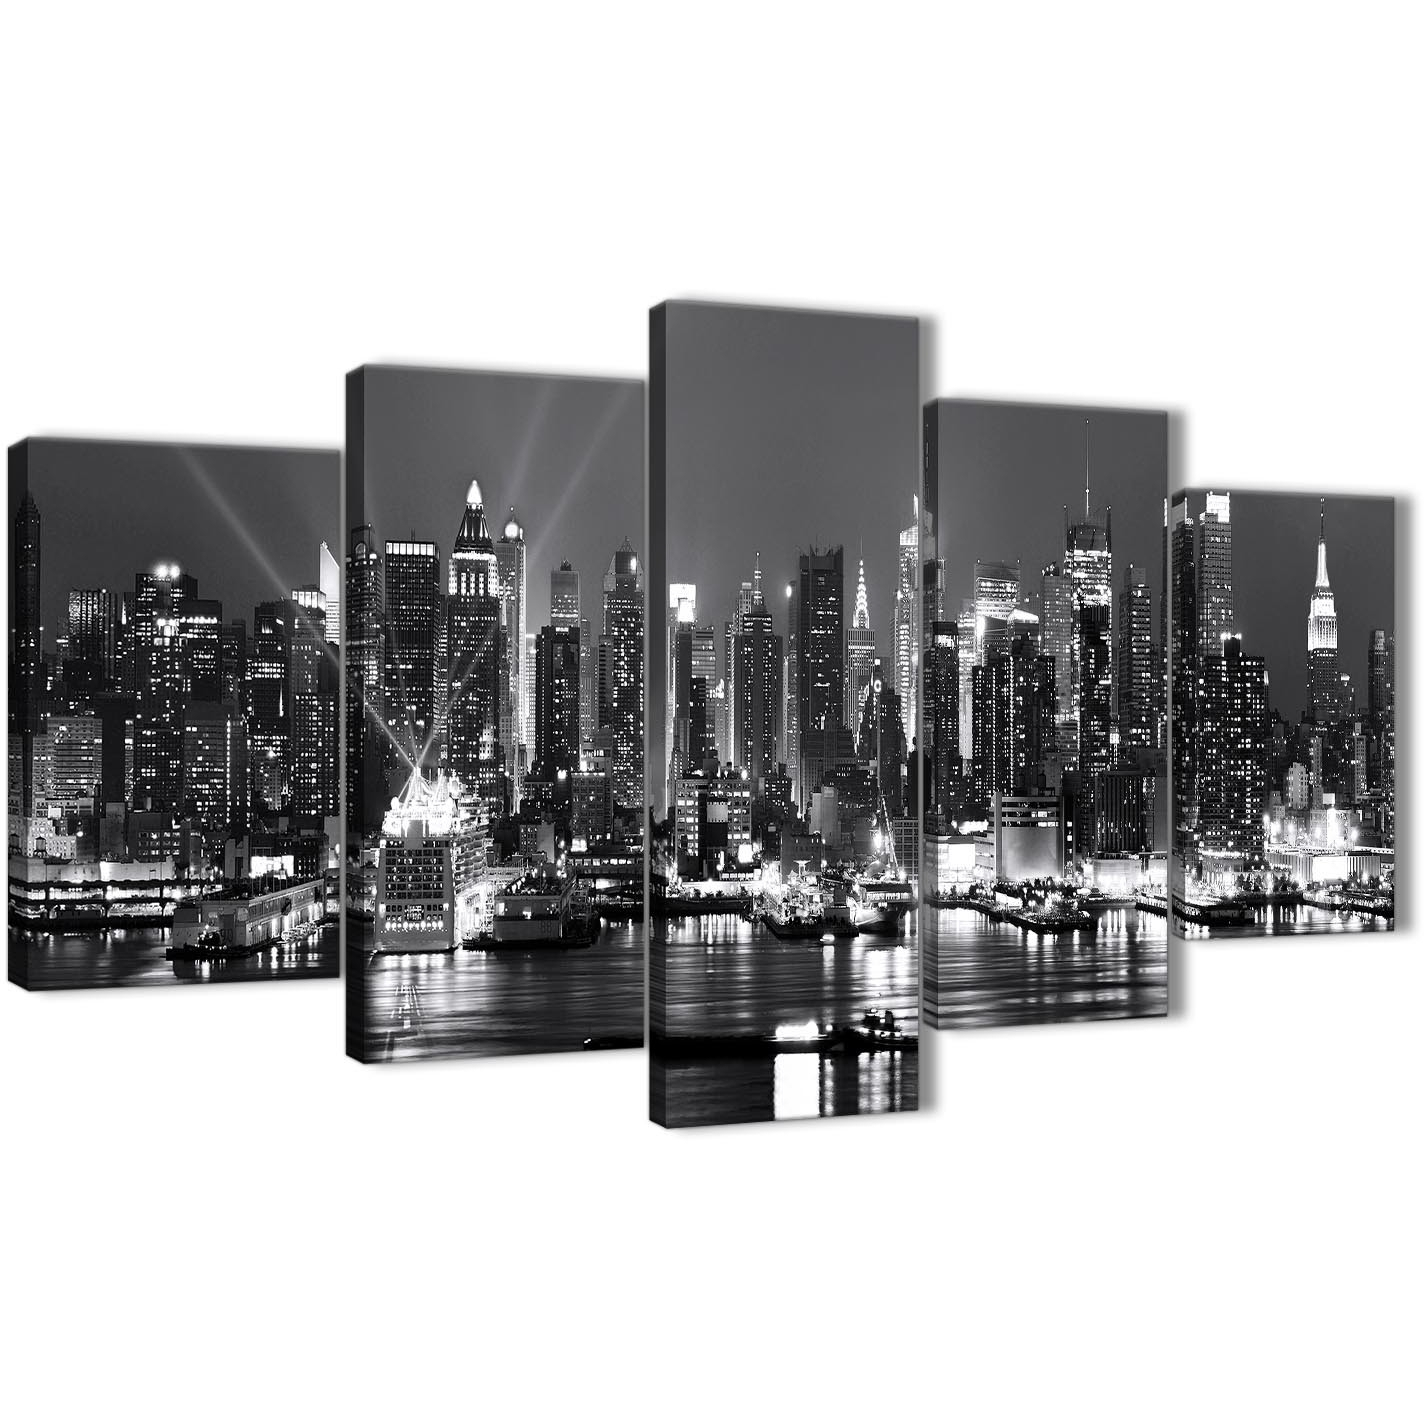 5 Panel Landscape Canvas Wall Art Prints – New York Hudson River In 2017 New York Wall Art (View 16 of 20)